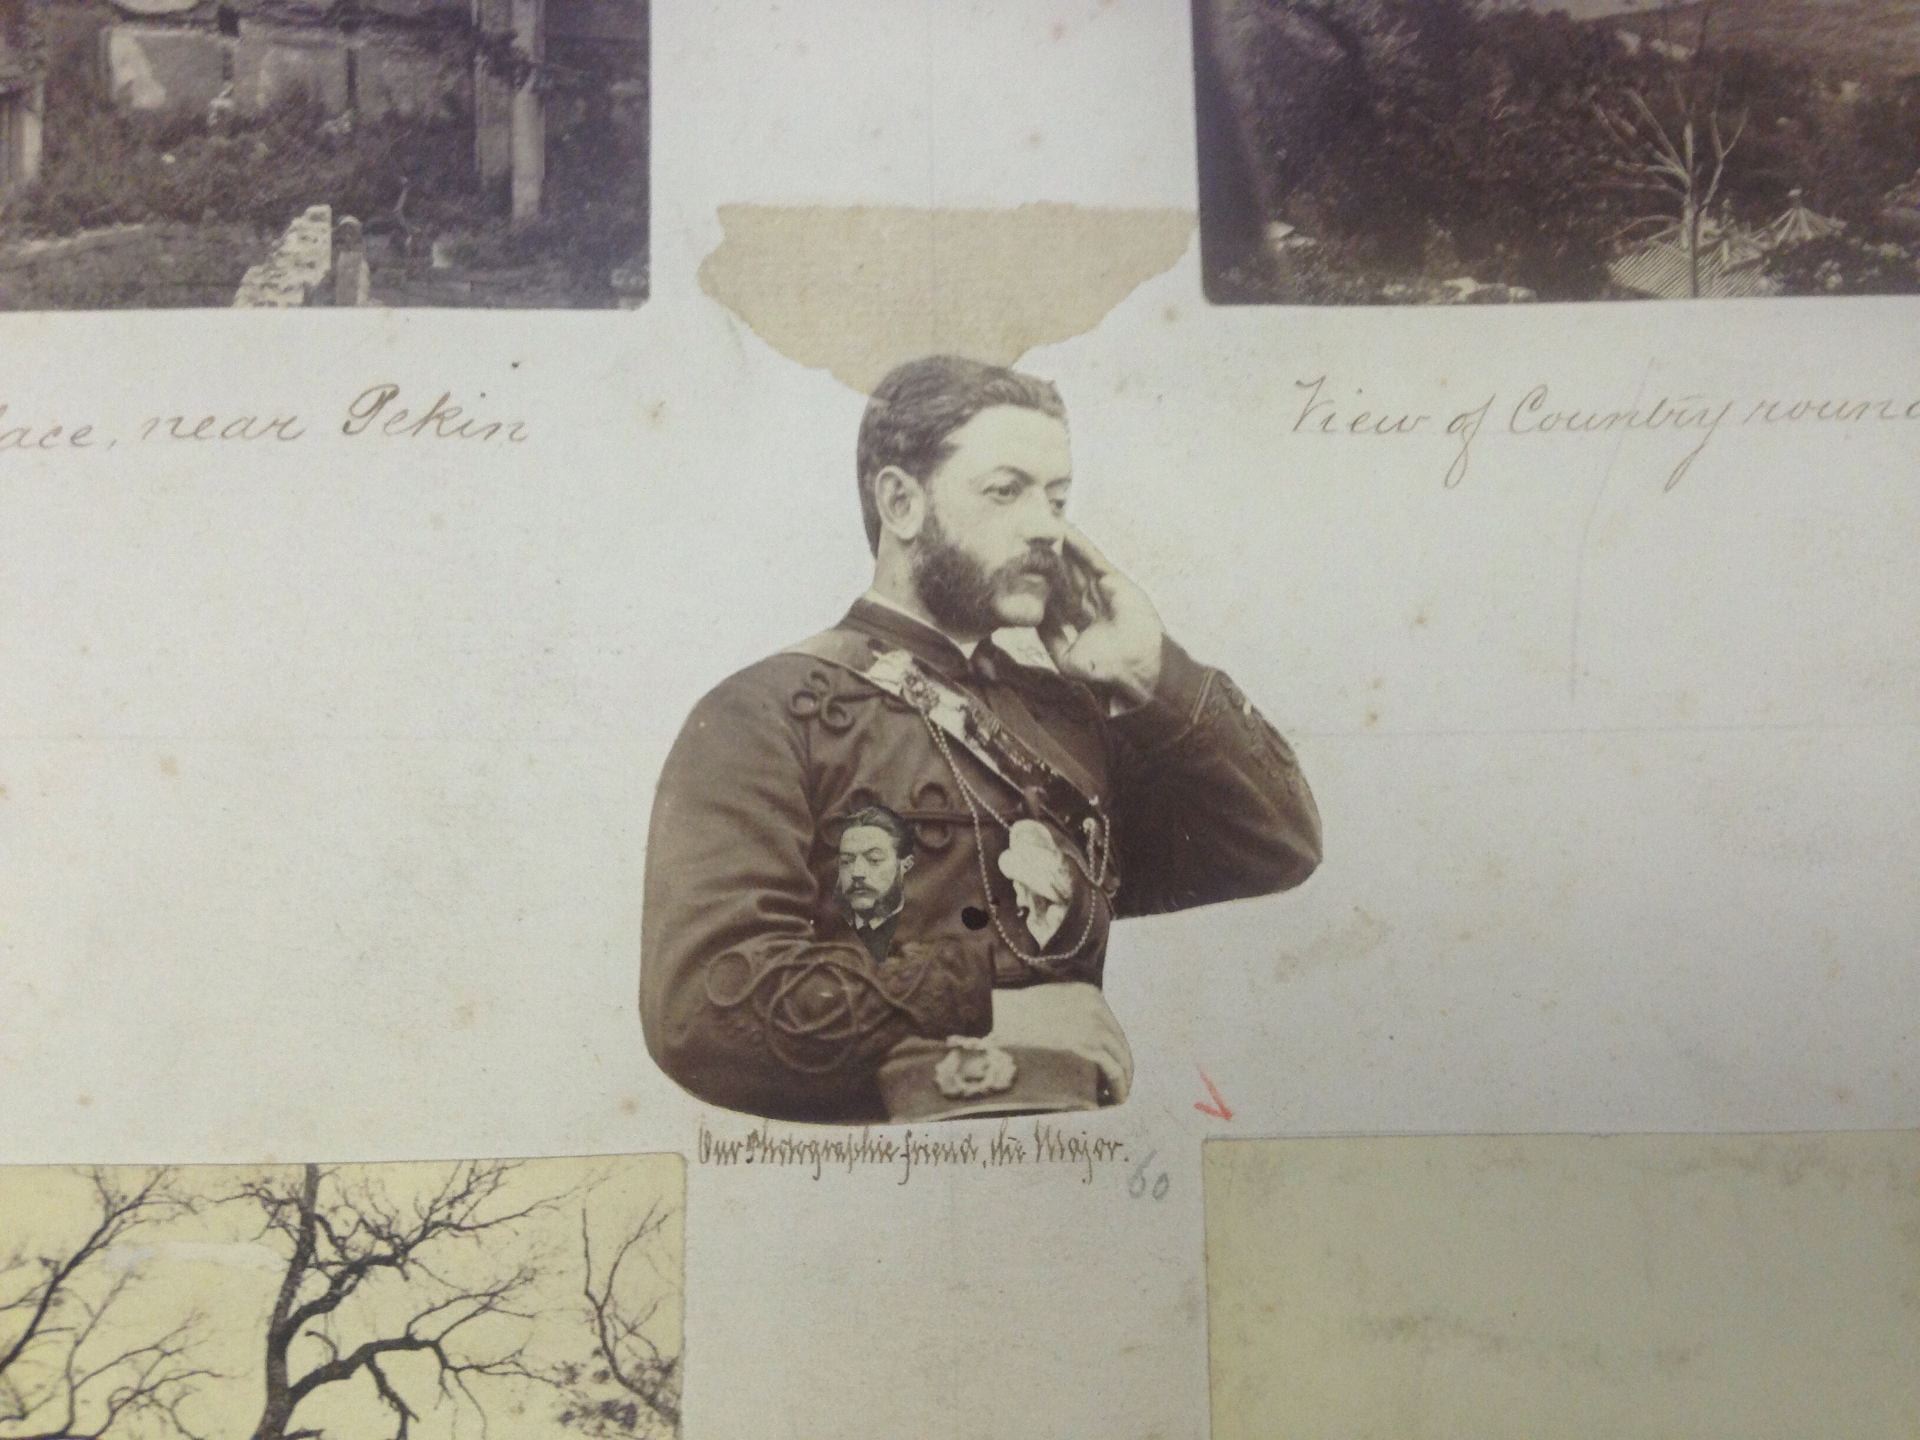 """Photomontage double portrait of Major James Crombie Watson, c.1870 (See <a href=""""https://www.hpcbristol.net/visual/bo02-001"""">Bo02-001</a>), holding a second portrait of himself and with someone/something in his pocket, pasted in to the album at the IJA. Image courtesy of the Irish Jesuit Archive, Dublin."""